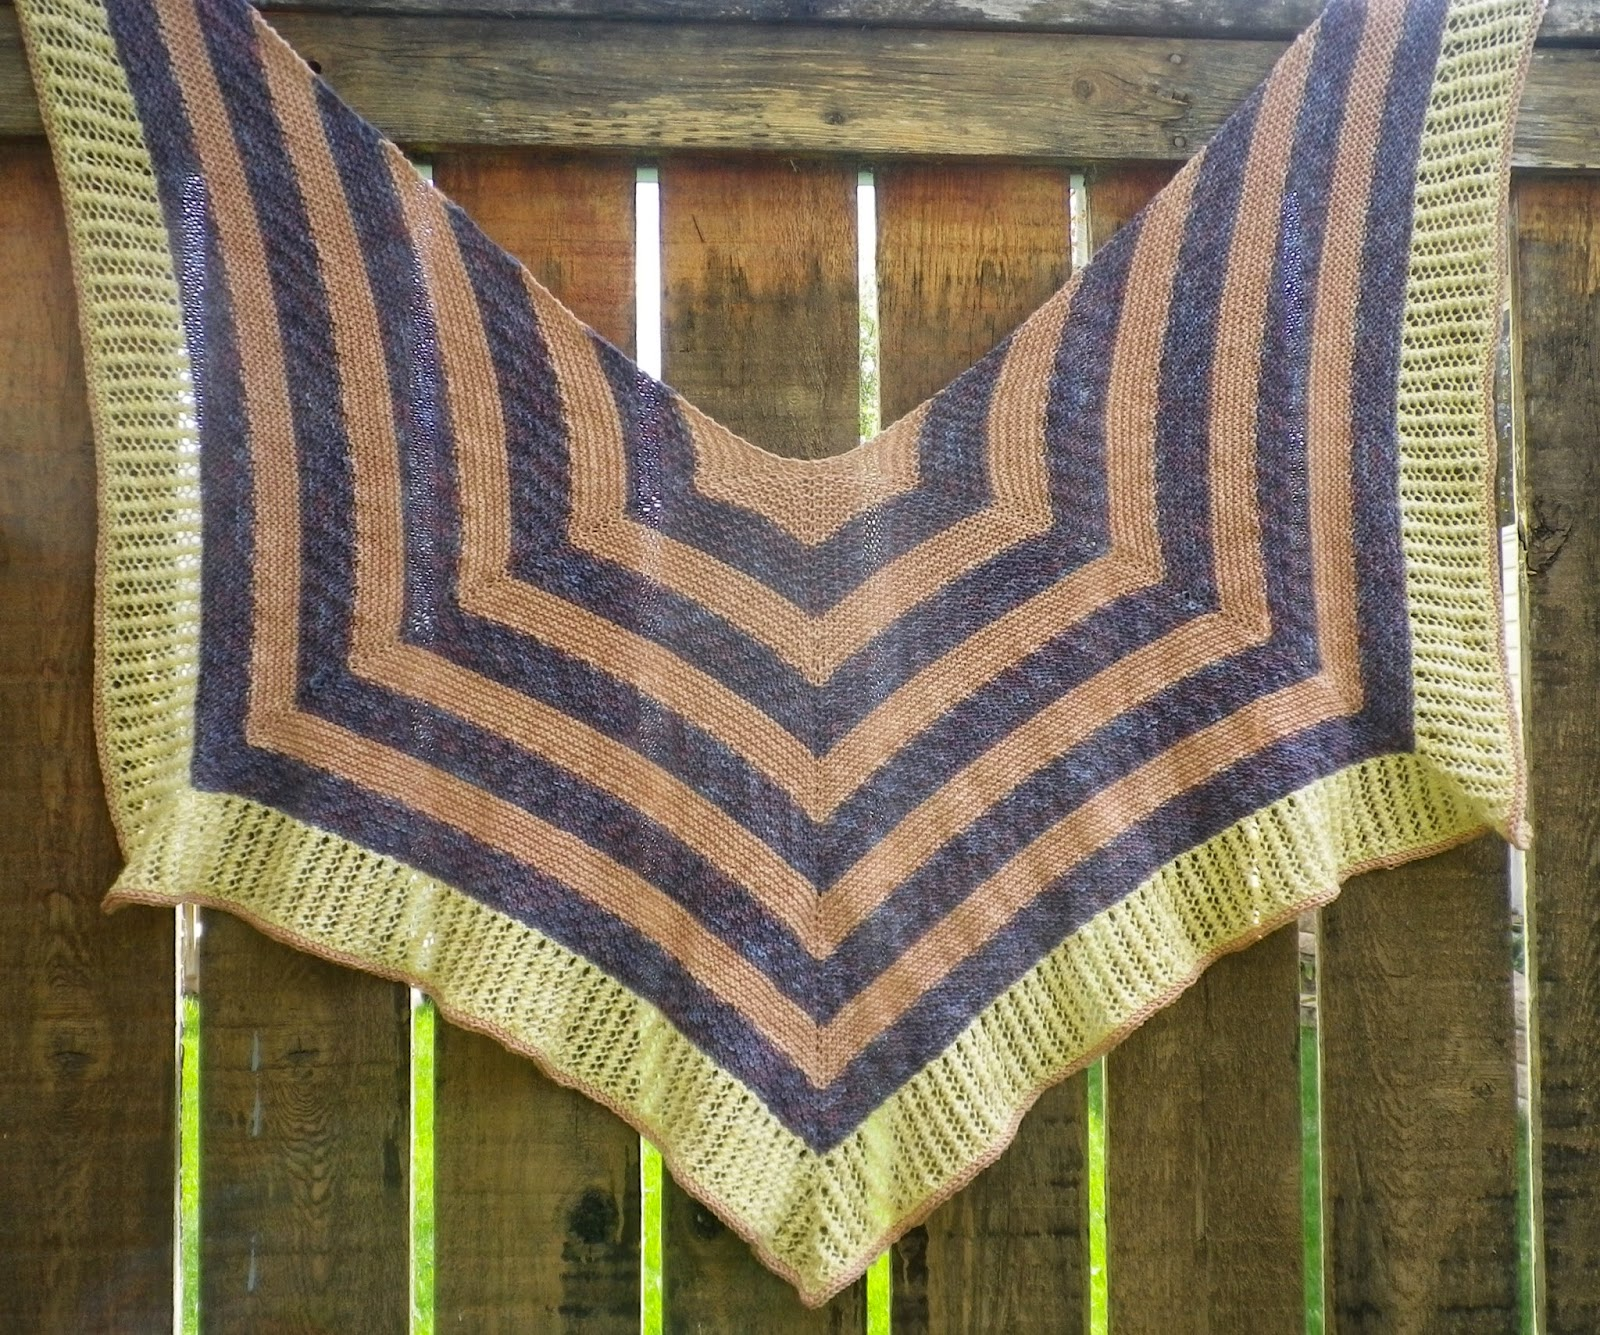 Rafu-Sen Shawl - Susan Elizabeth of Crescent Moon Collective